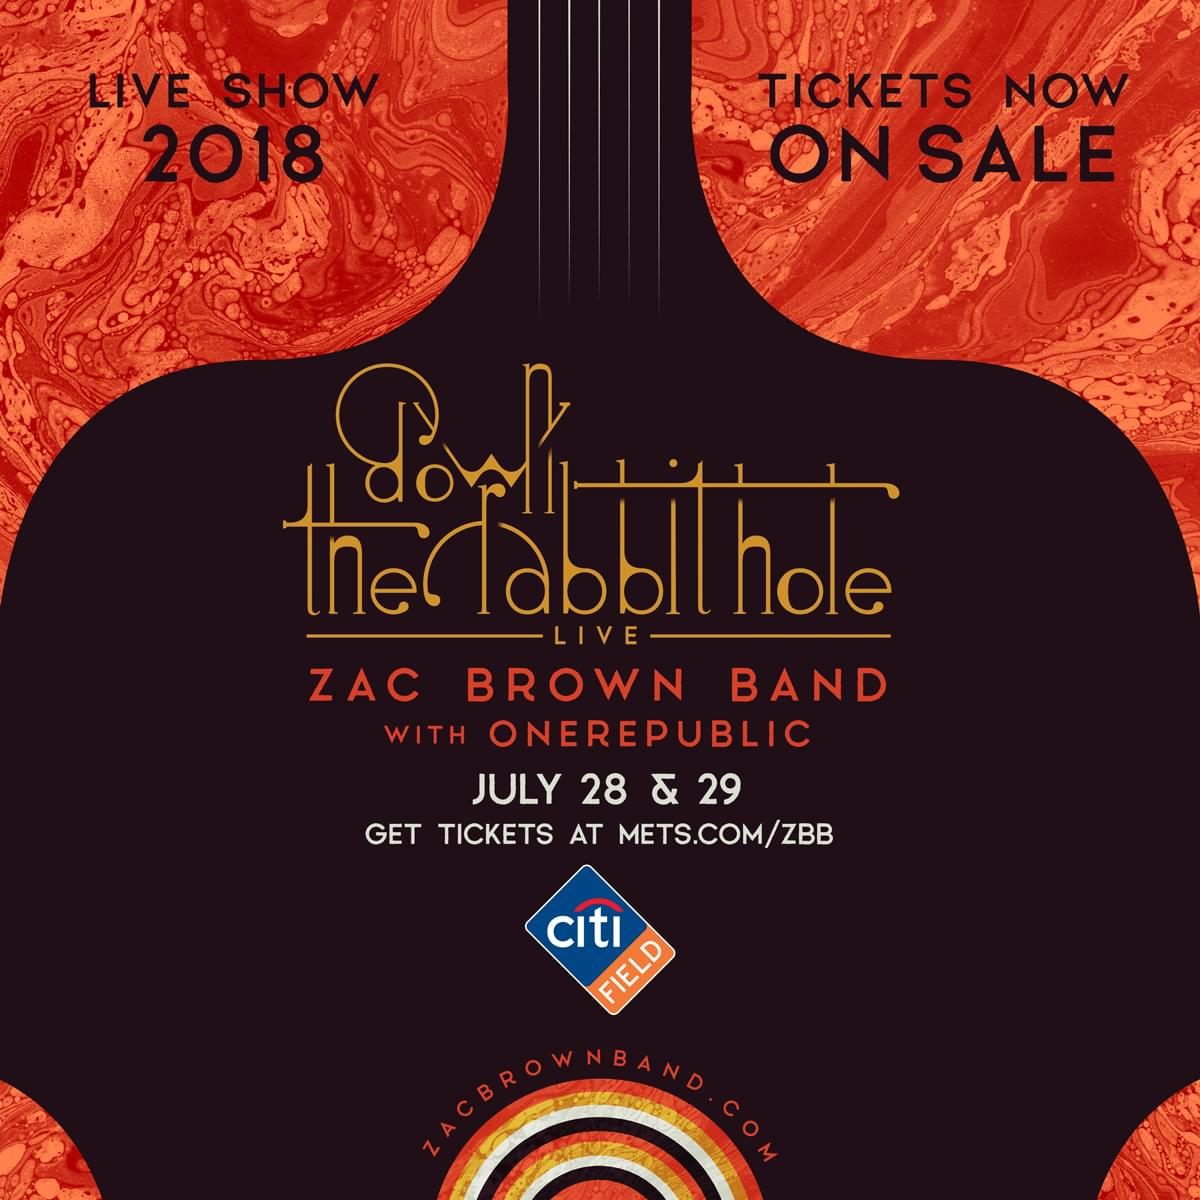 Win Tickets to 'Down The Rabbit Hole Live: Zac Brown Band 2018'